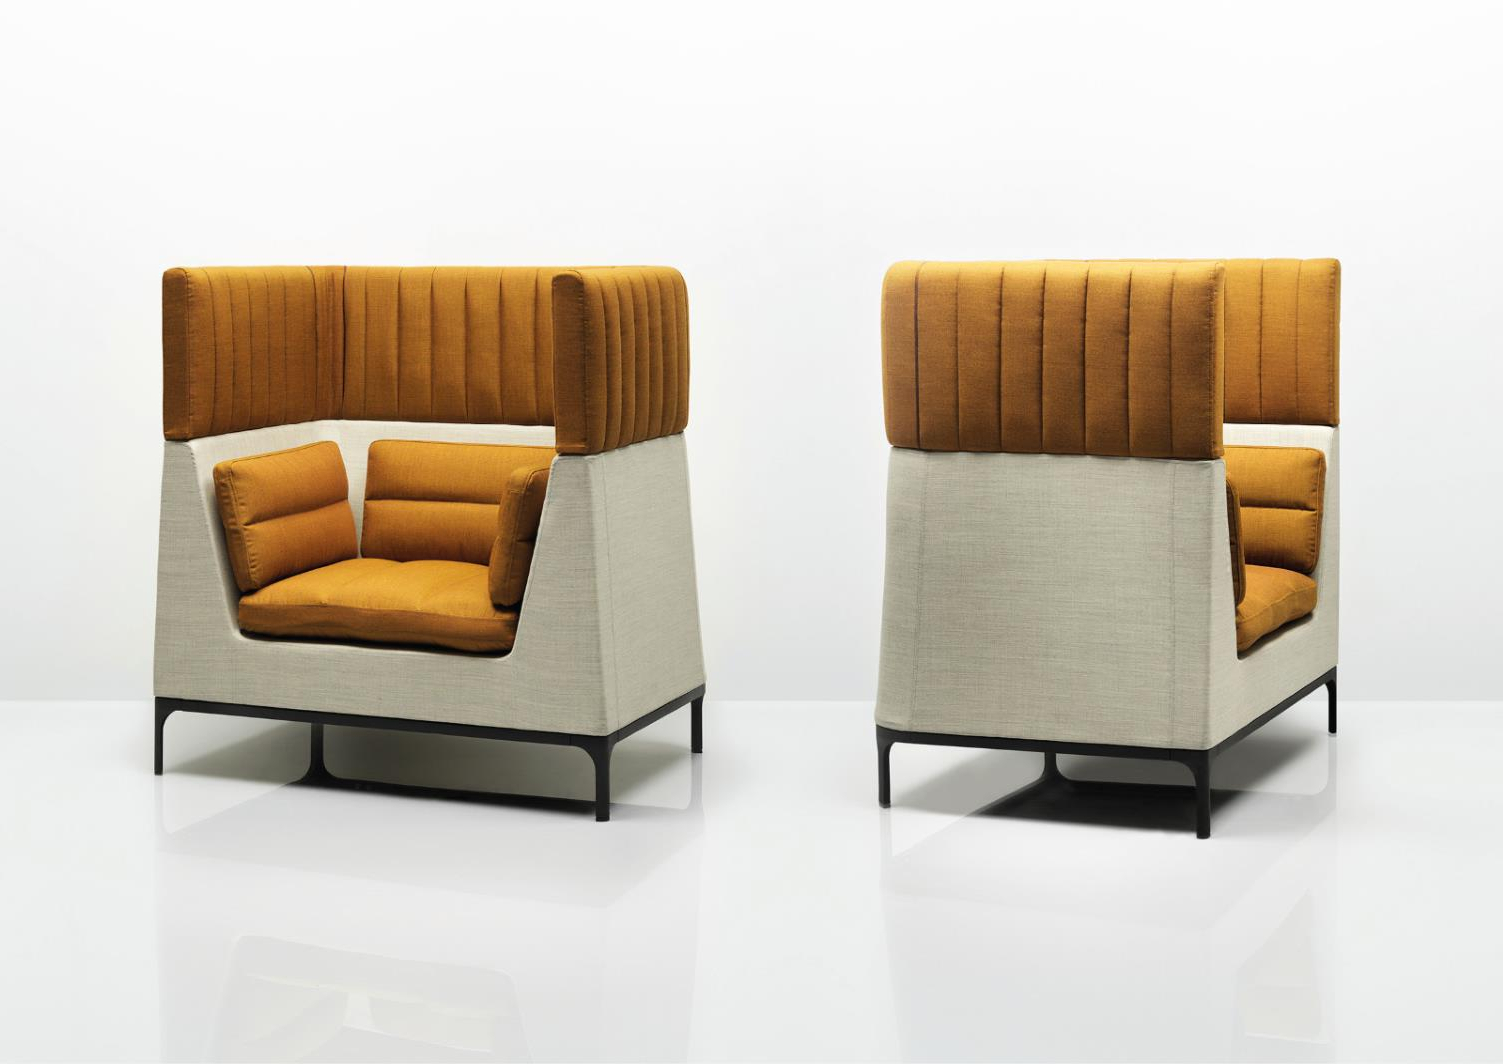 Reception & Soft Seating – Now Furniture Within Popular Haven Sofa Chairs (View 5 of 20)